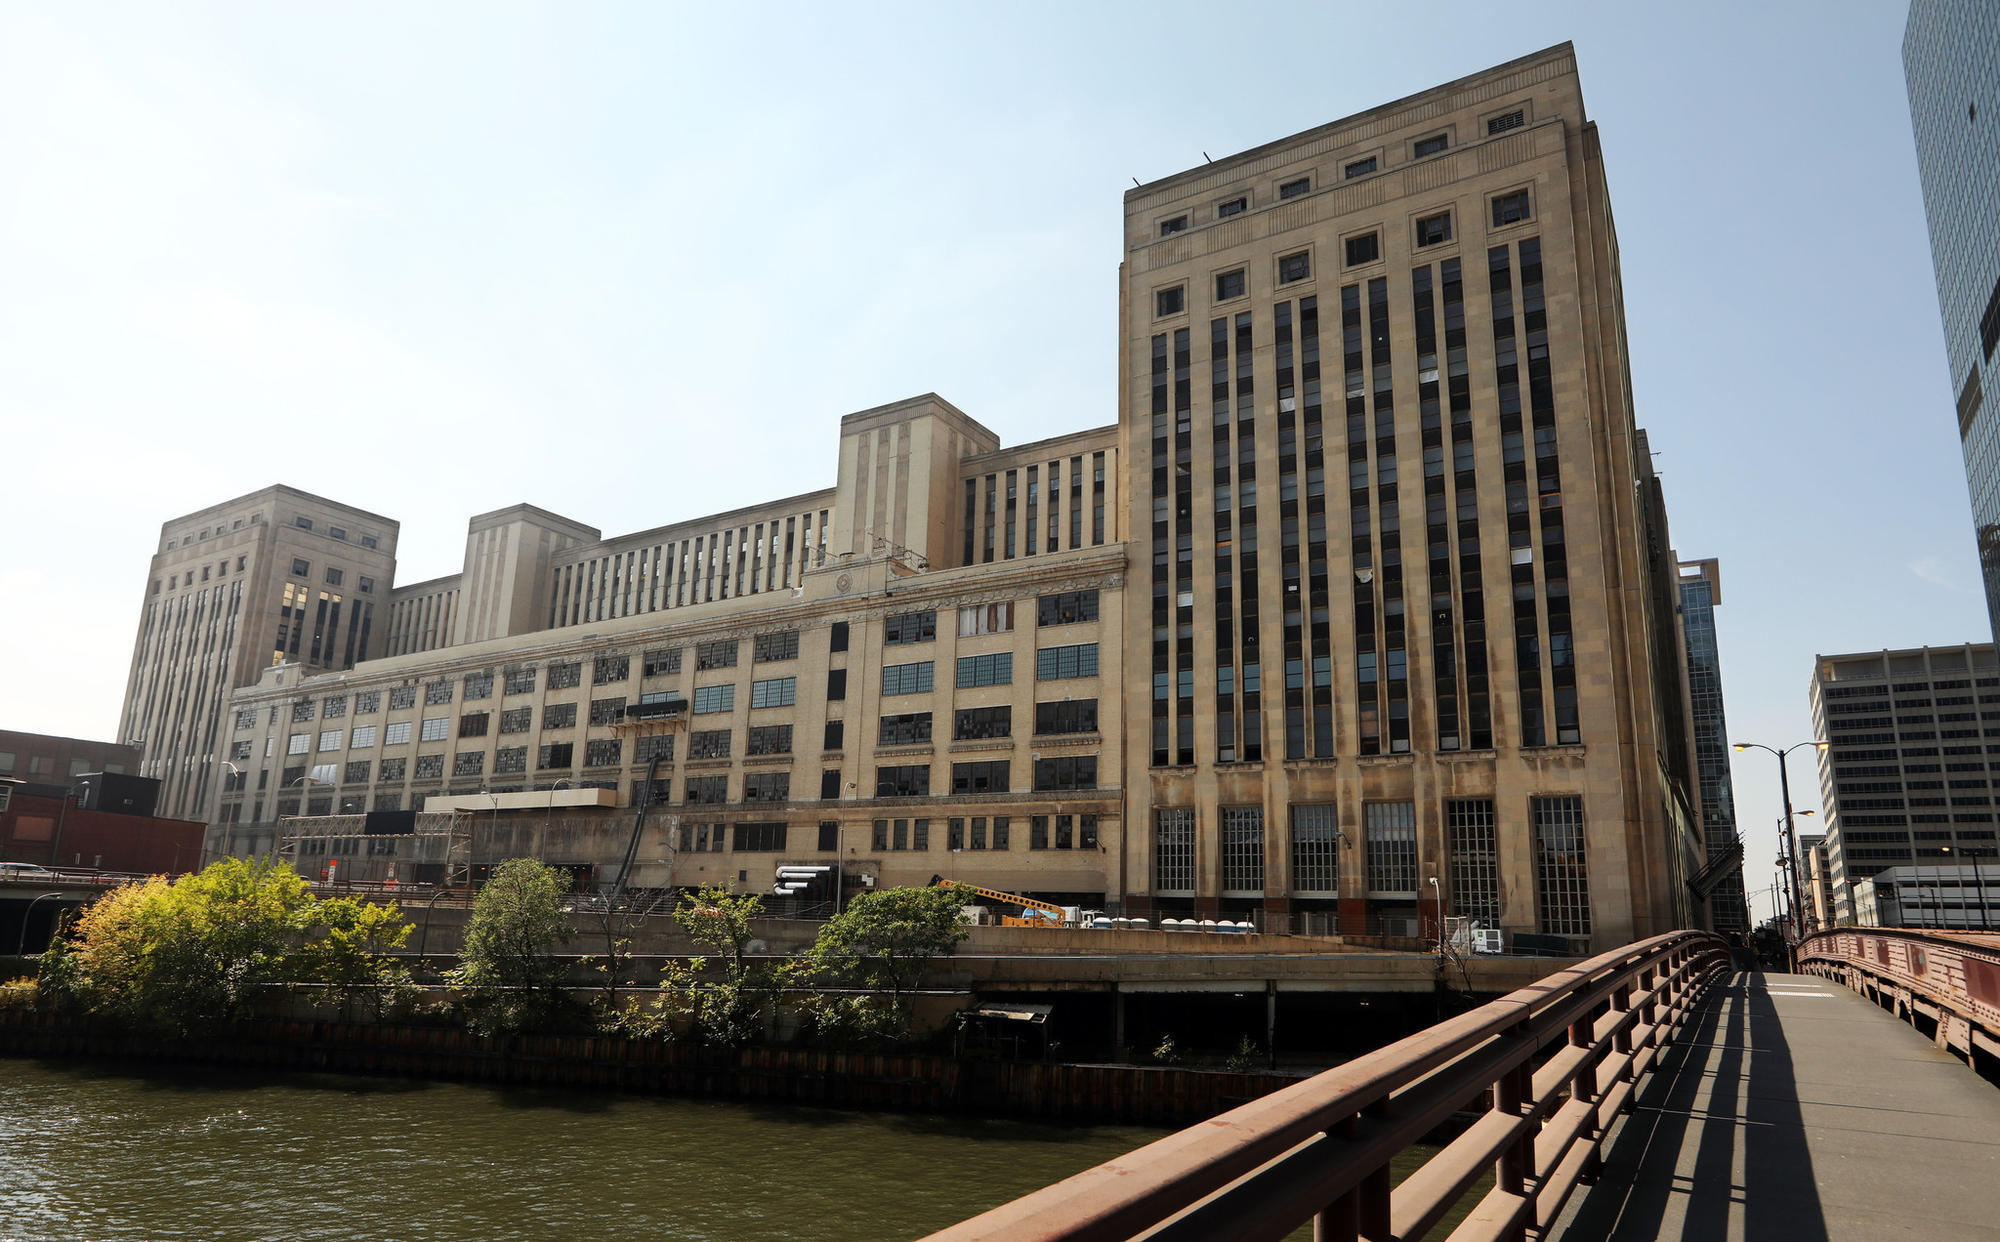 Walgreens To Become First Tenant At Chicago S Old Main Post Office